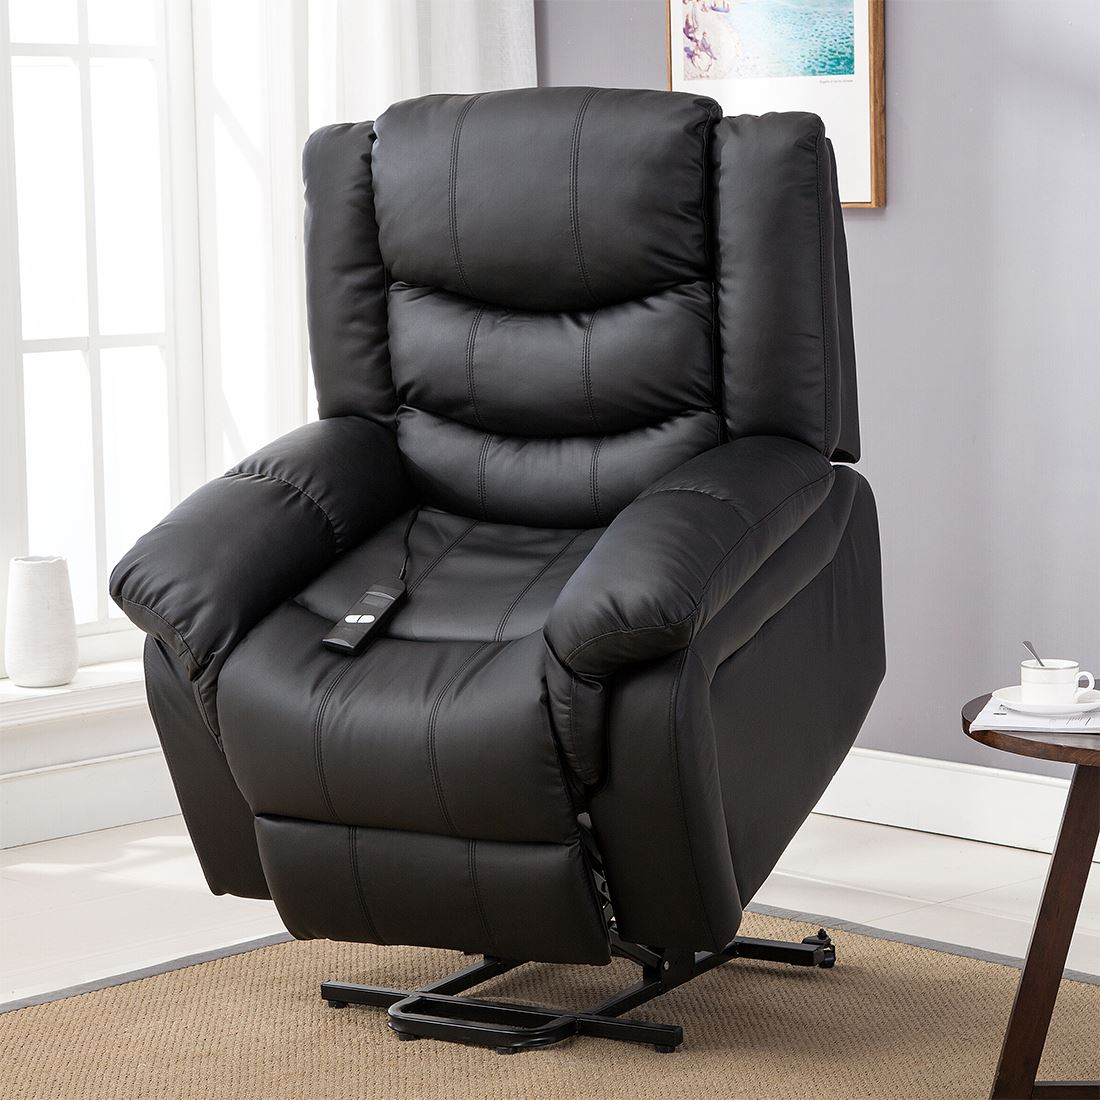 SEATTLE-ELECTRIC-RISE-REAL-LEATHER-RECLINER-ARMCHAIR-SOFA-HOME-LOUNGE-CHAIR thumbnail 3